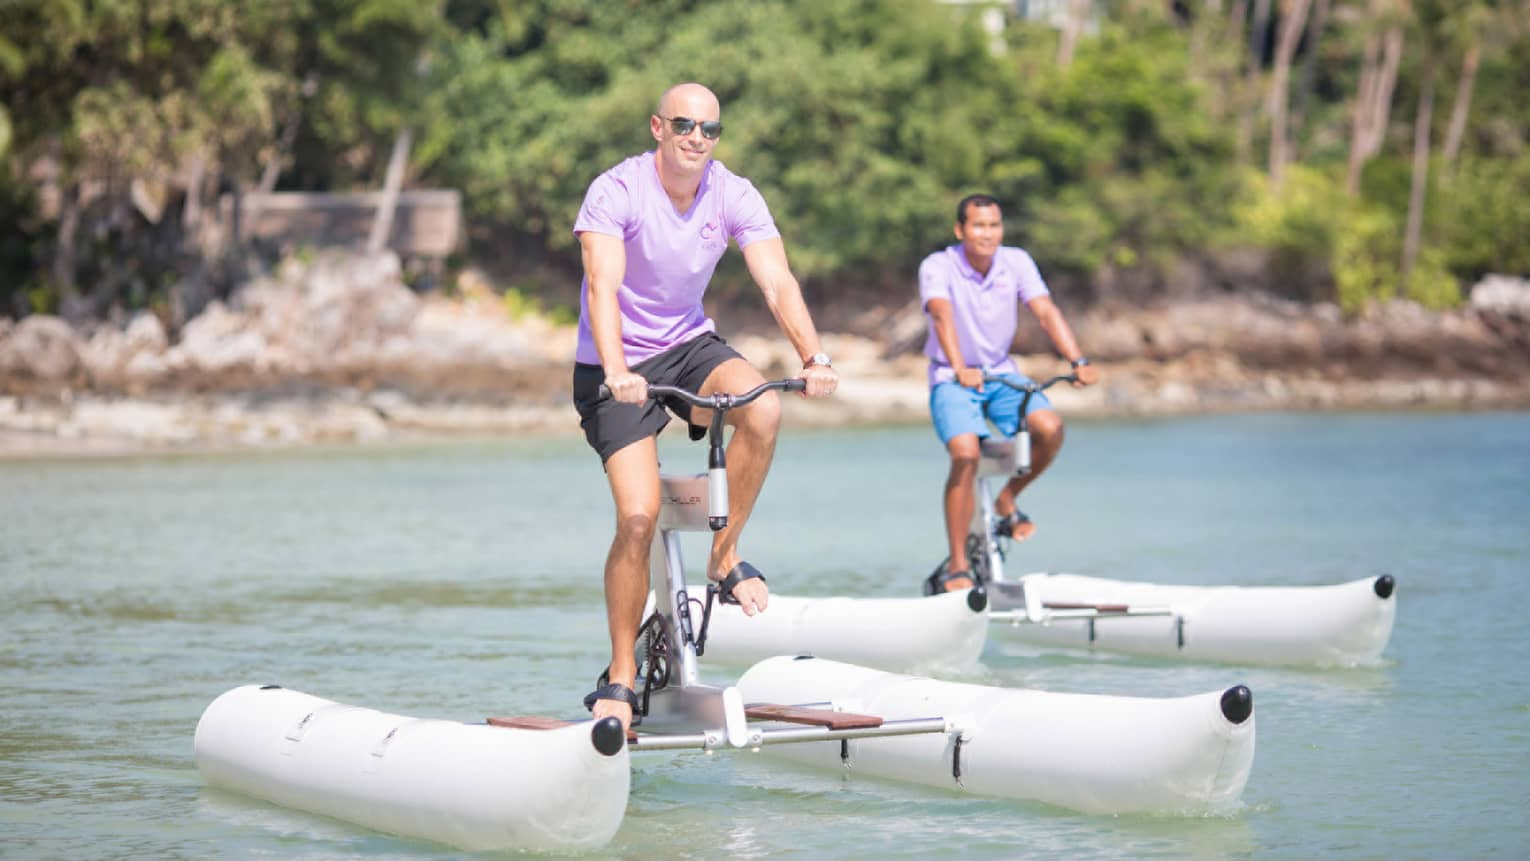 Two people wearing sunglasses pedal large white water-bike pontoons on ocean